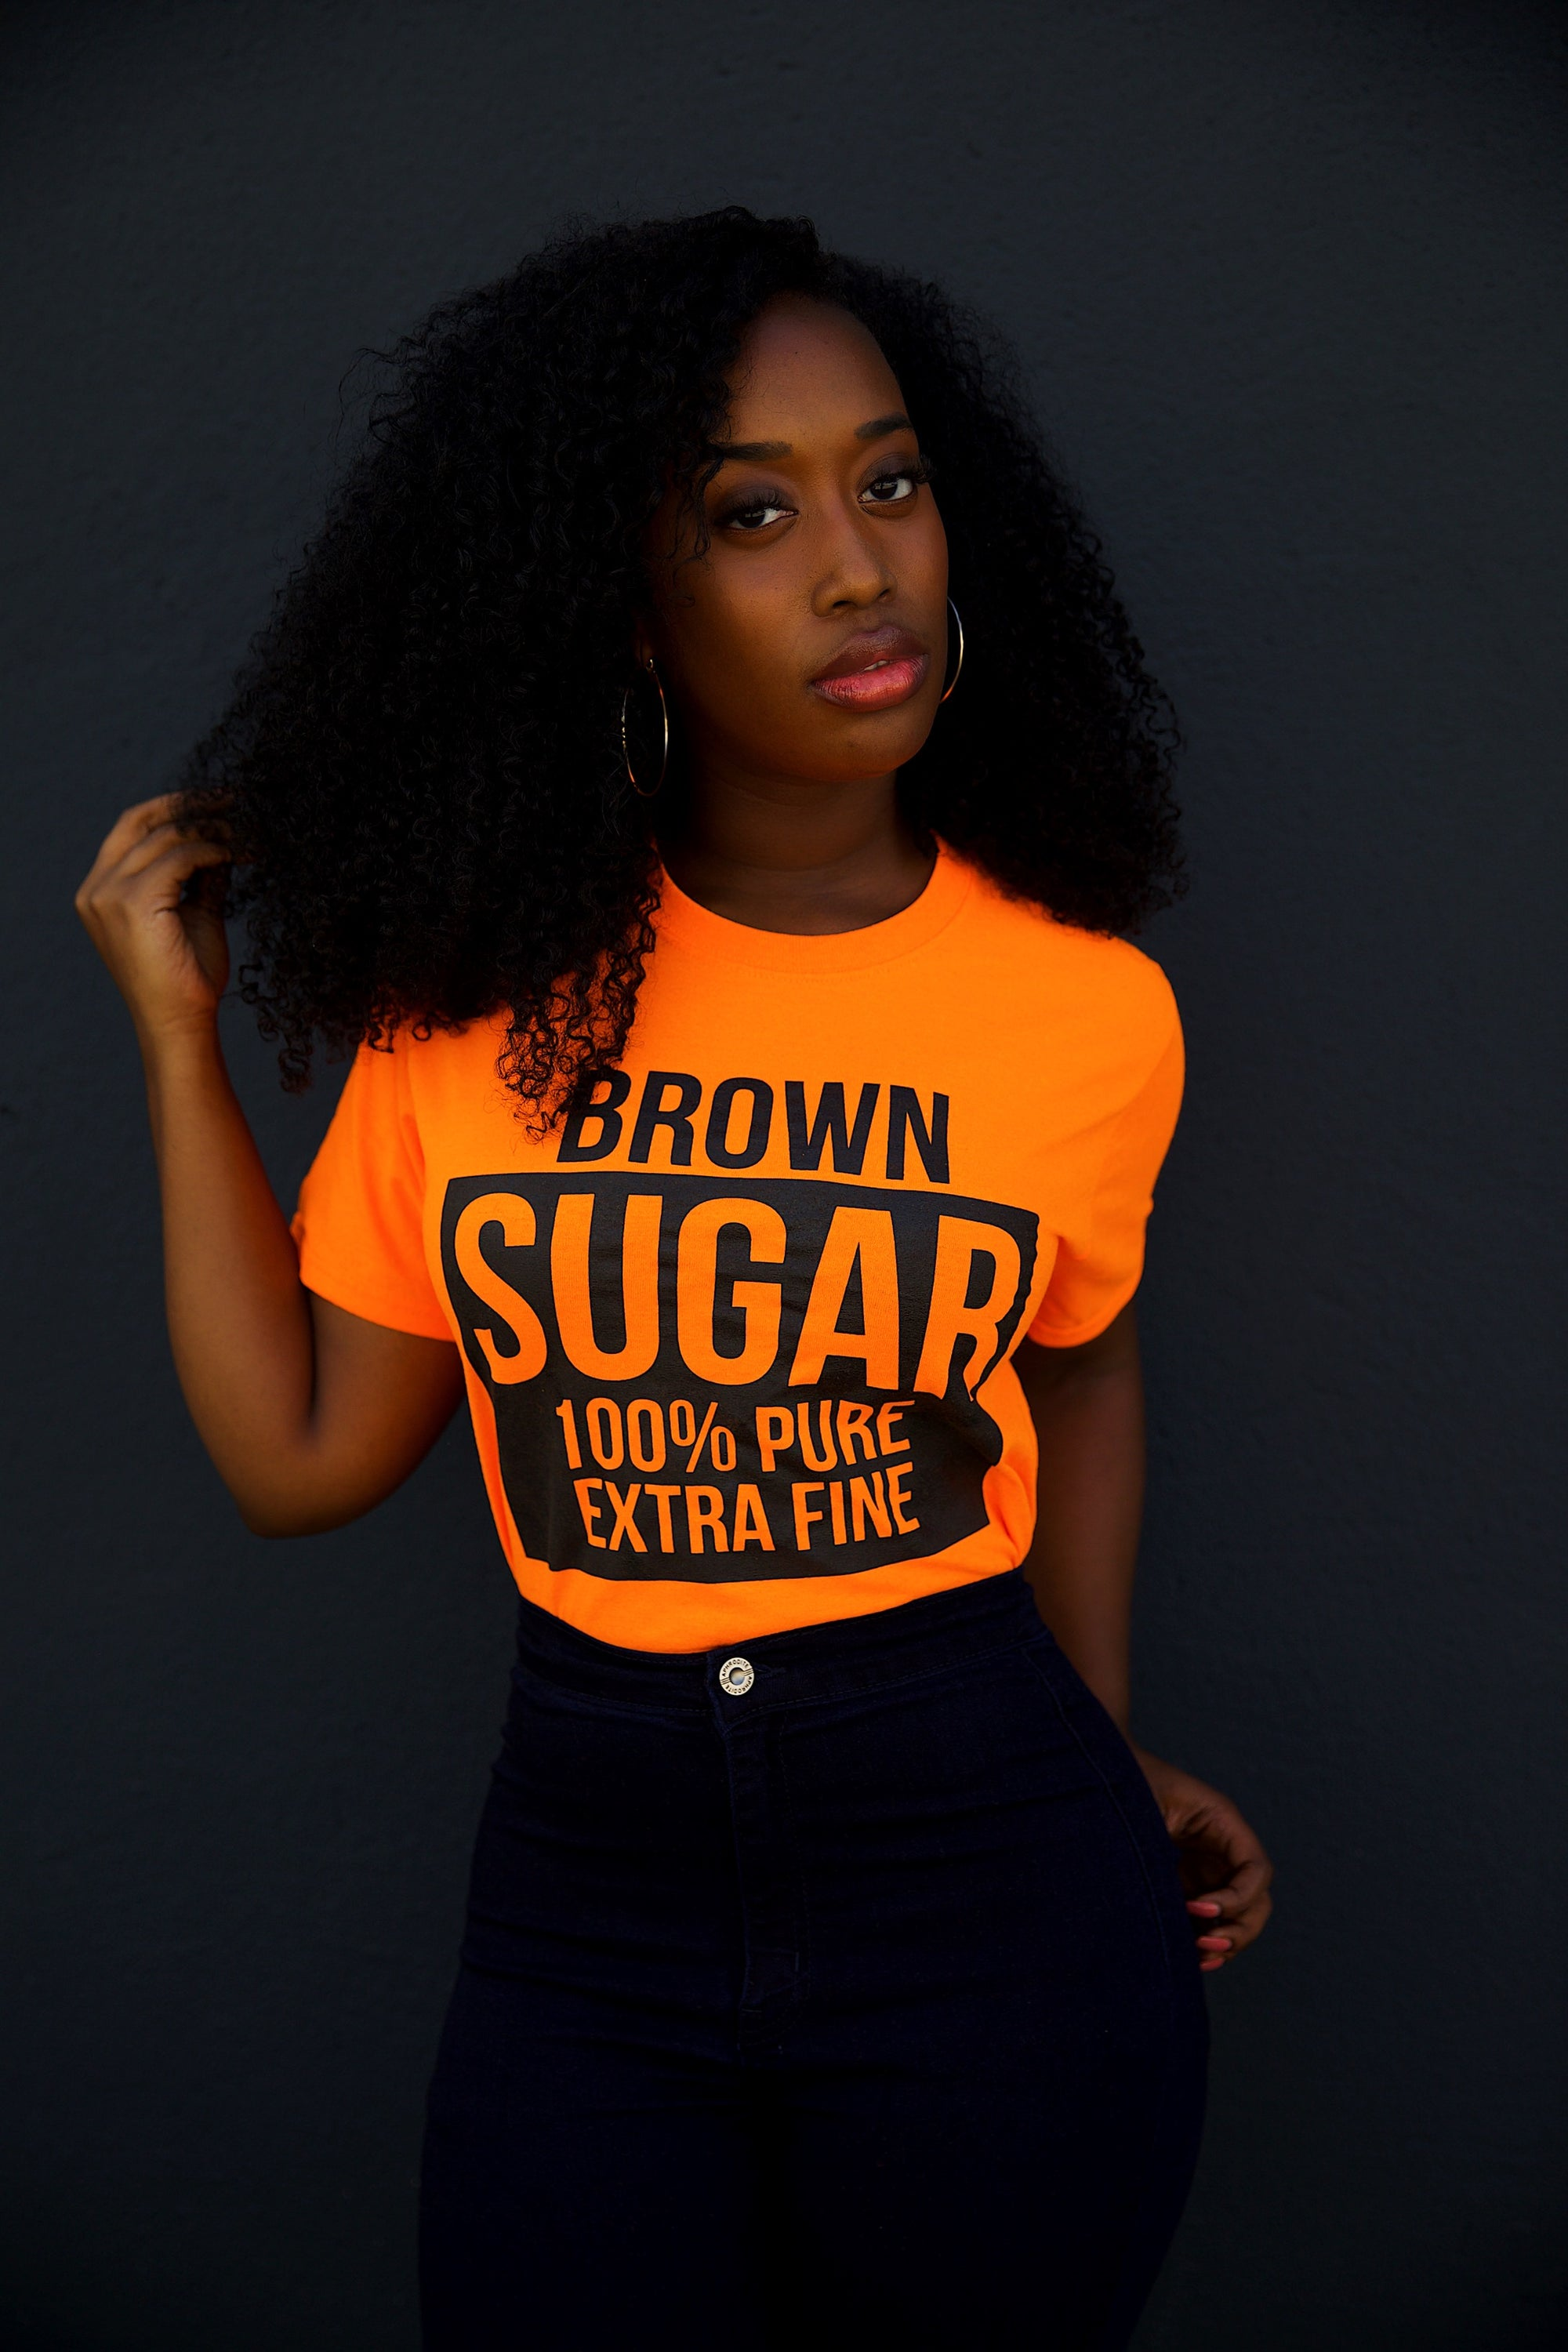 BROWN SUGAR (HIGHLIGHTER ORANGE TEE)